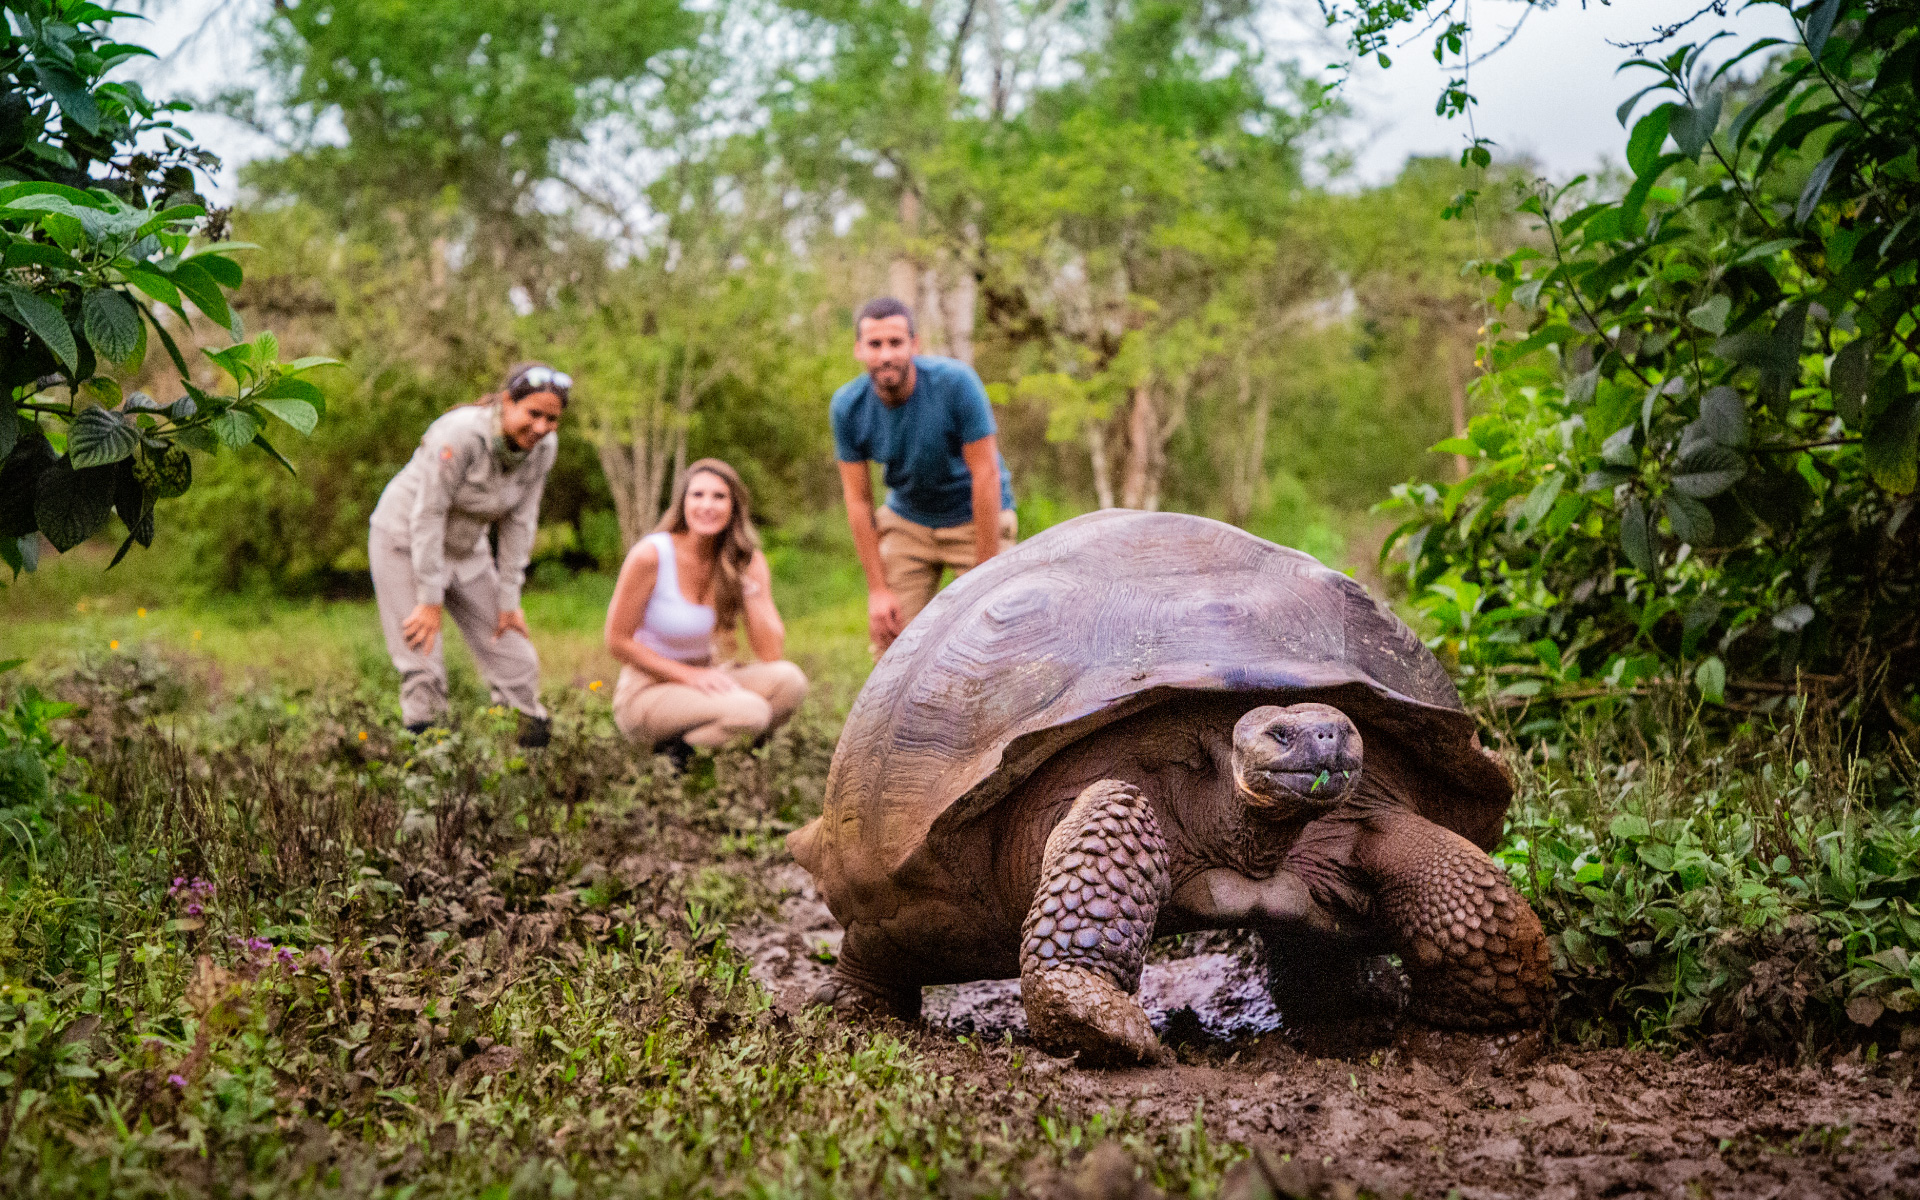 Galapagos giant tortoise at Manzanillo